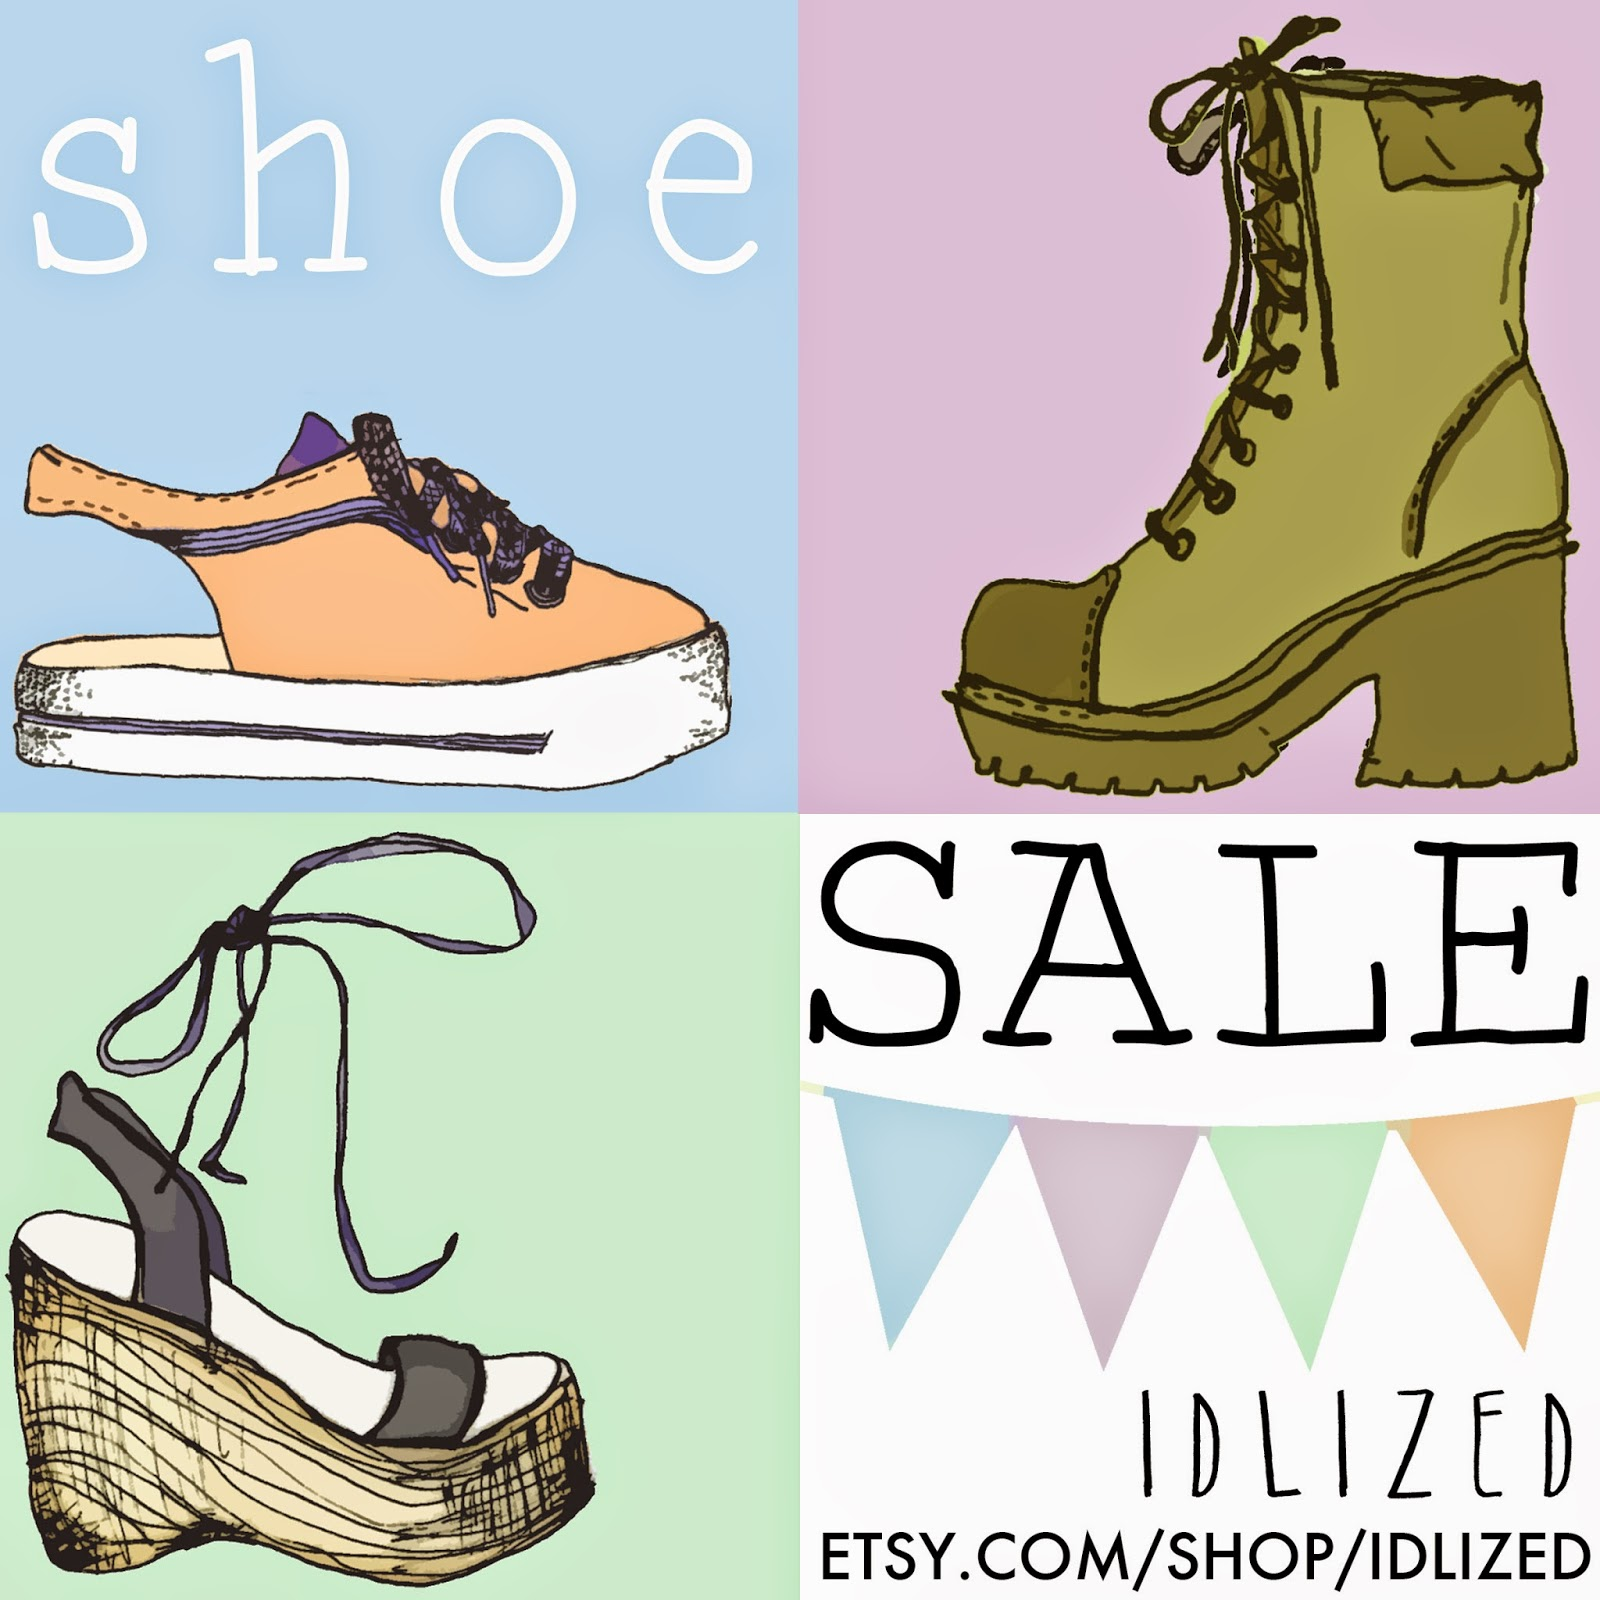 #shoe #sale #handdrawn #sketch #90s #platforms #hand #drawing #illustration #etsy #poster